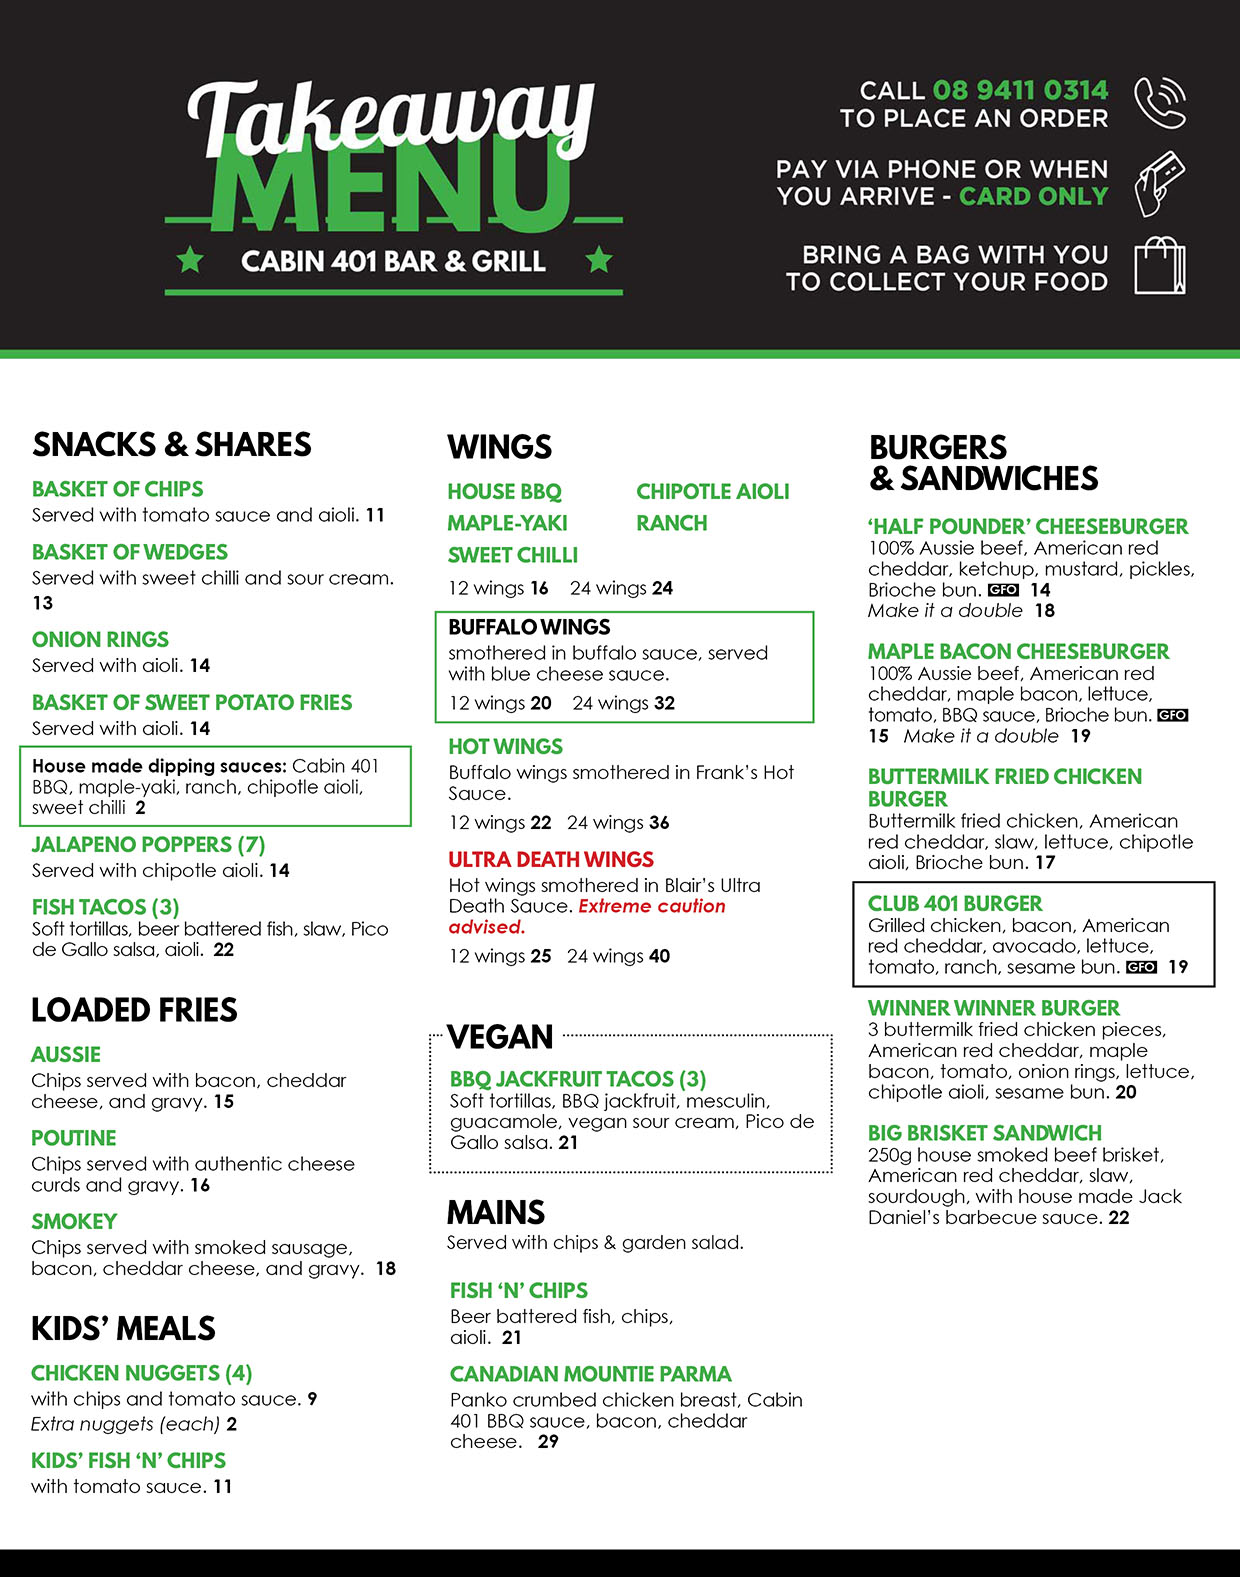 Takeaway menu for Cabin 401 Bar & Grill in Bibra Lake.